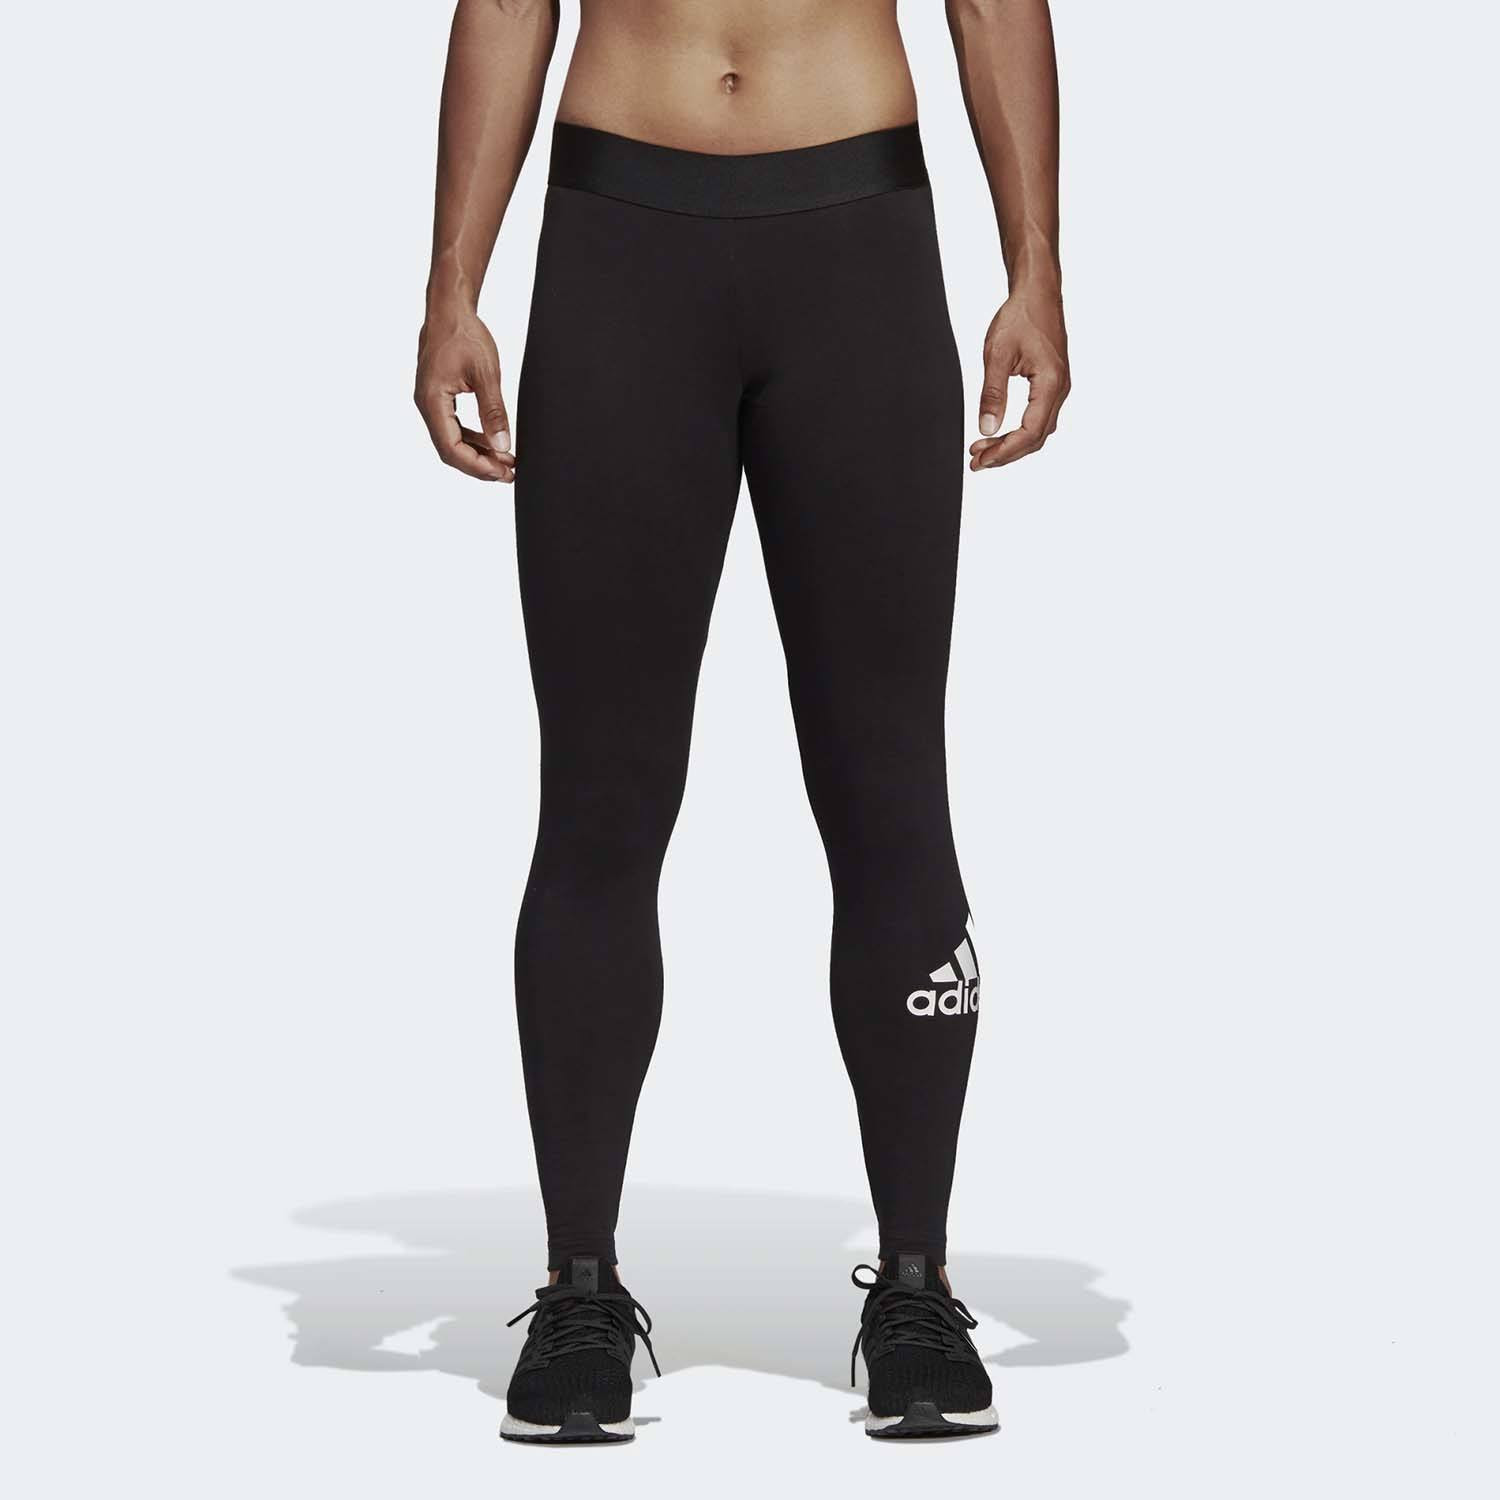 adidas Must Haves Badge Of Sport Women's Tights - Γυναικείο Κολάν (9000023514_1480)